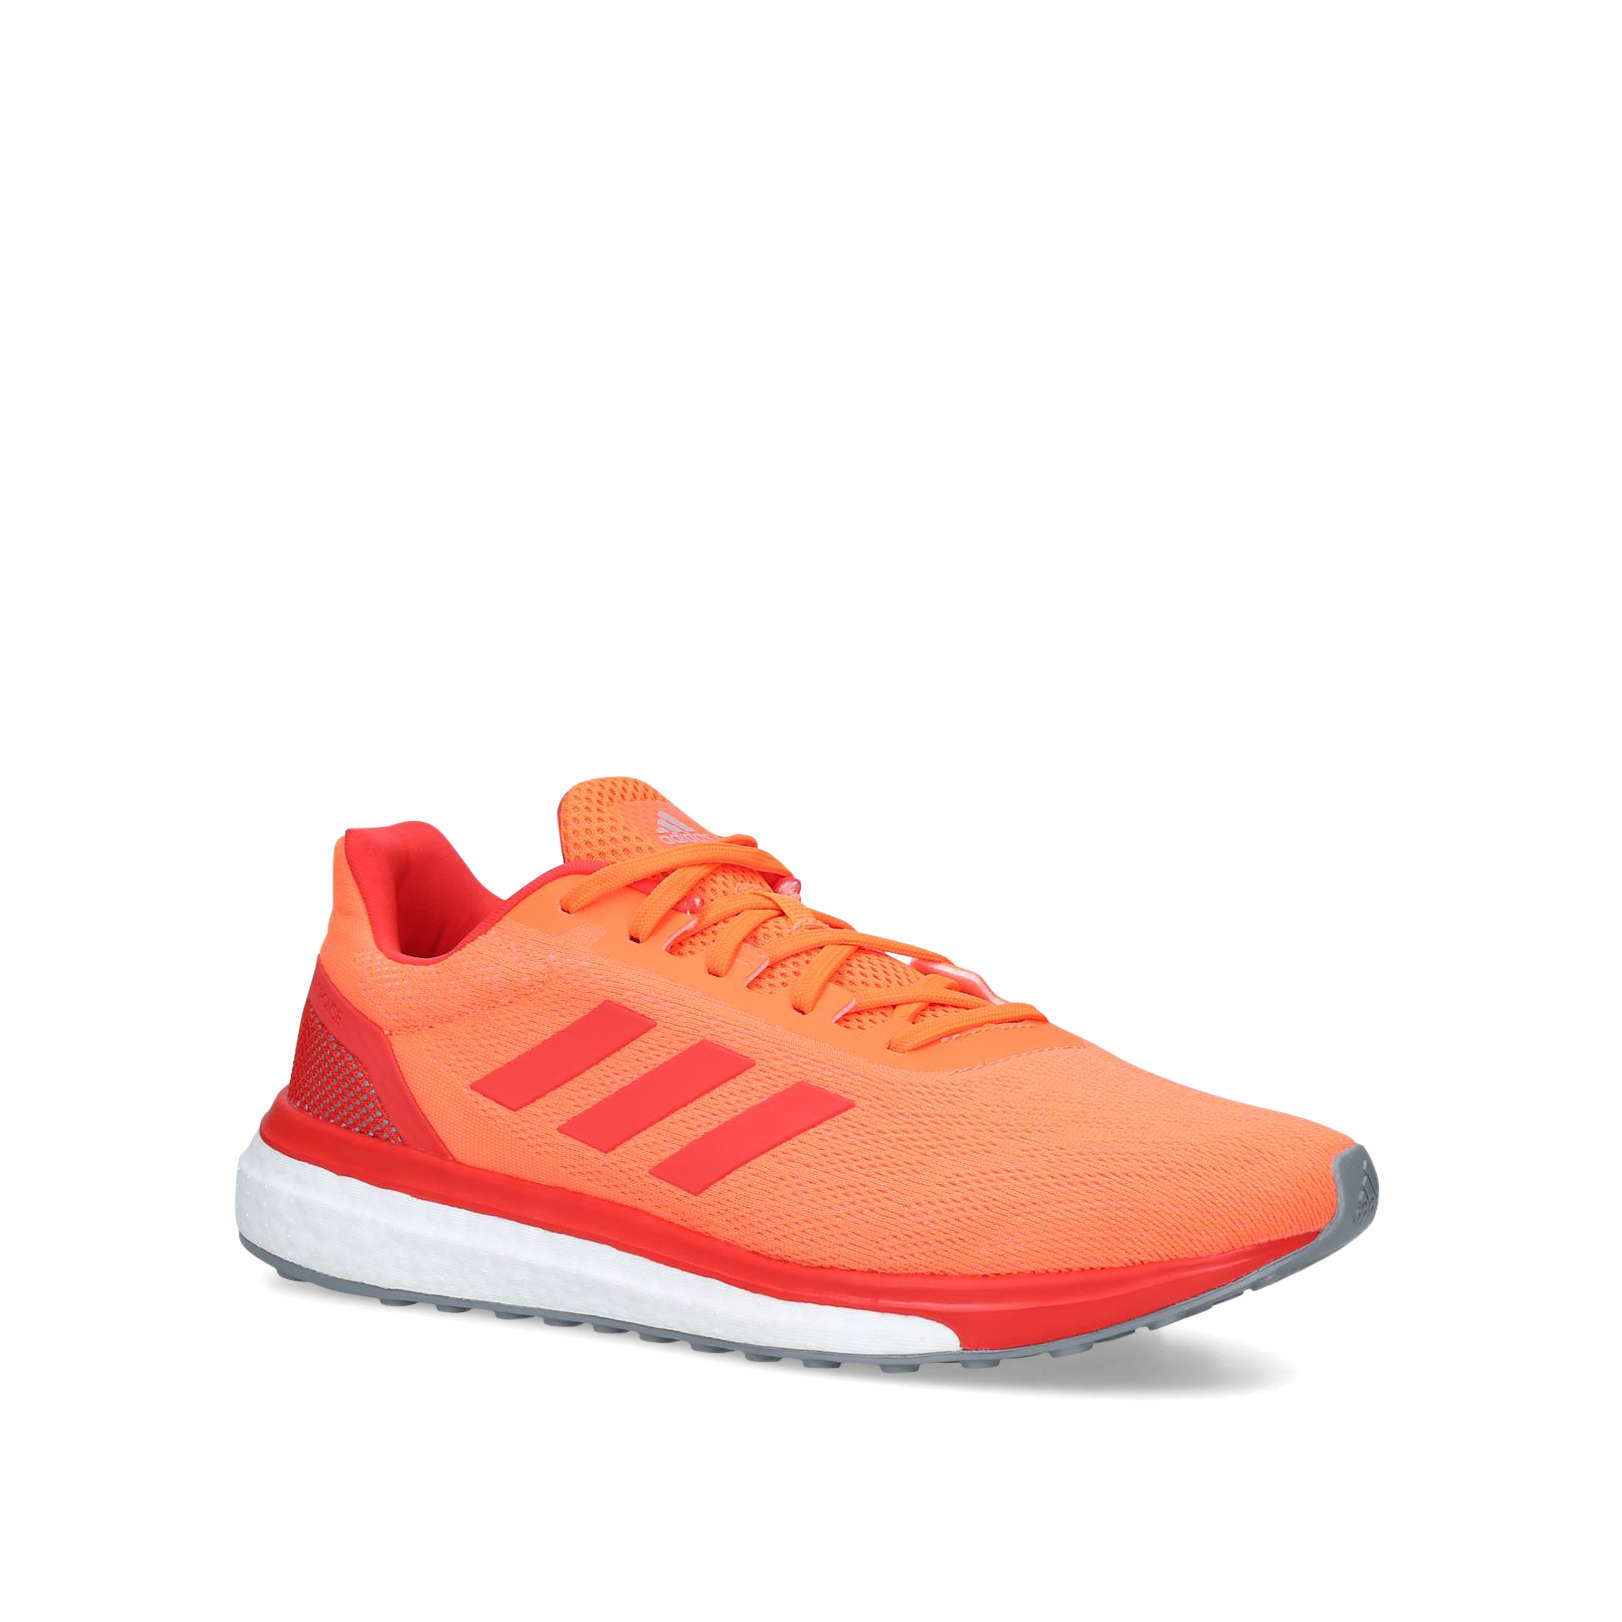 new concept afb03 b4e9a RESPONSE - ADIDAS Sneakers